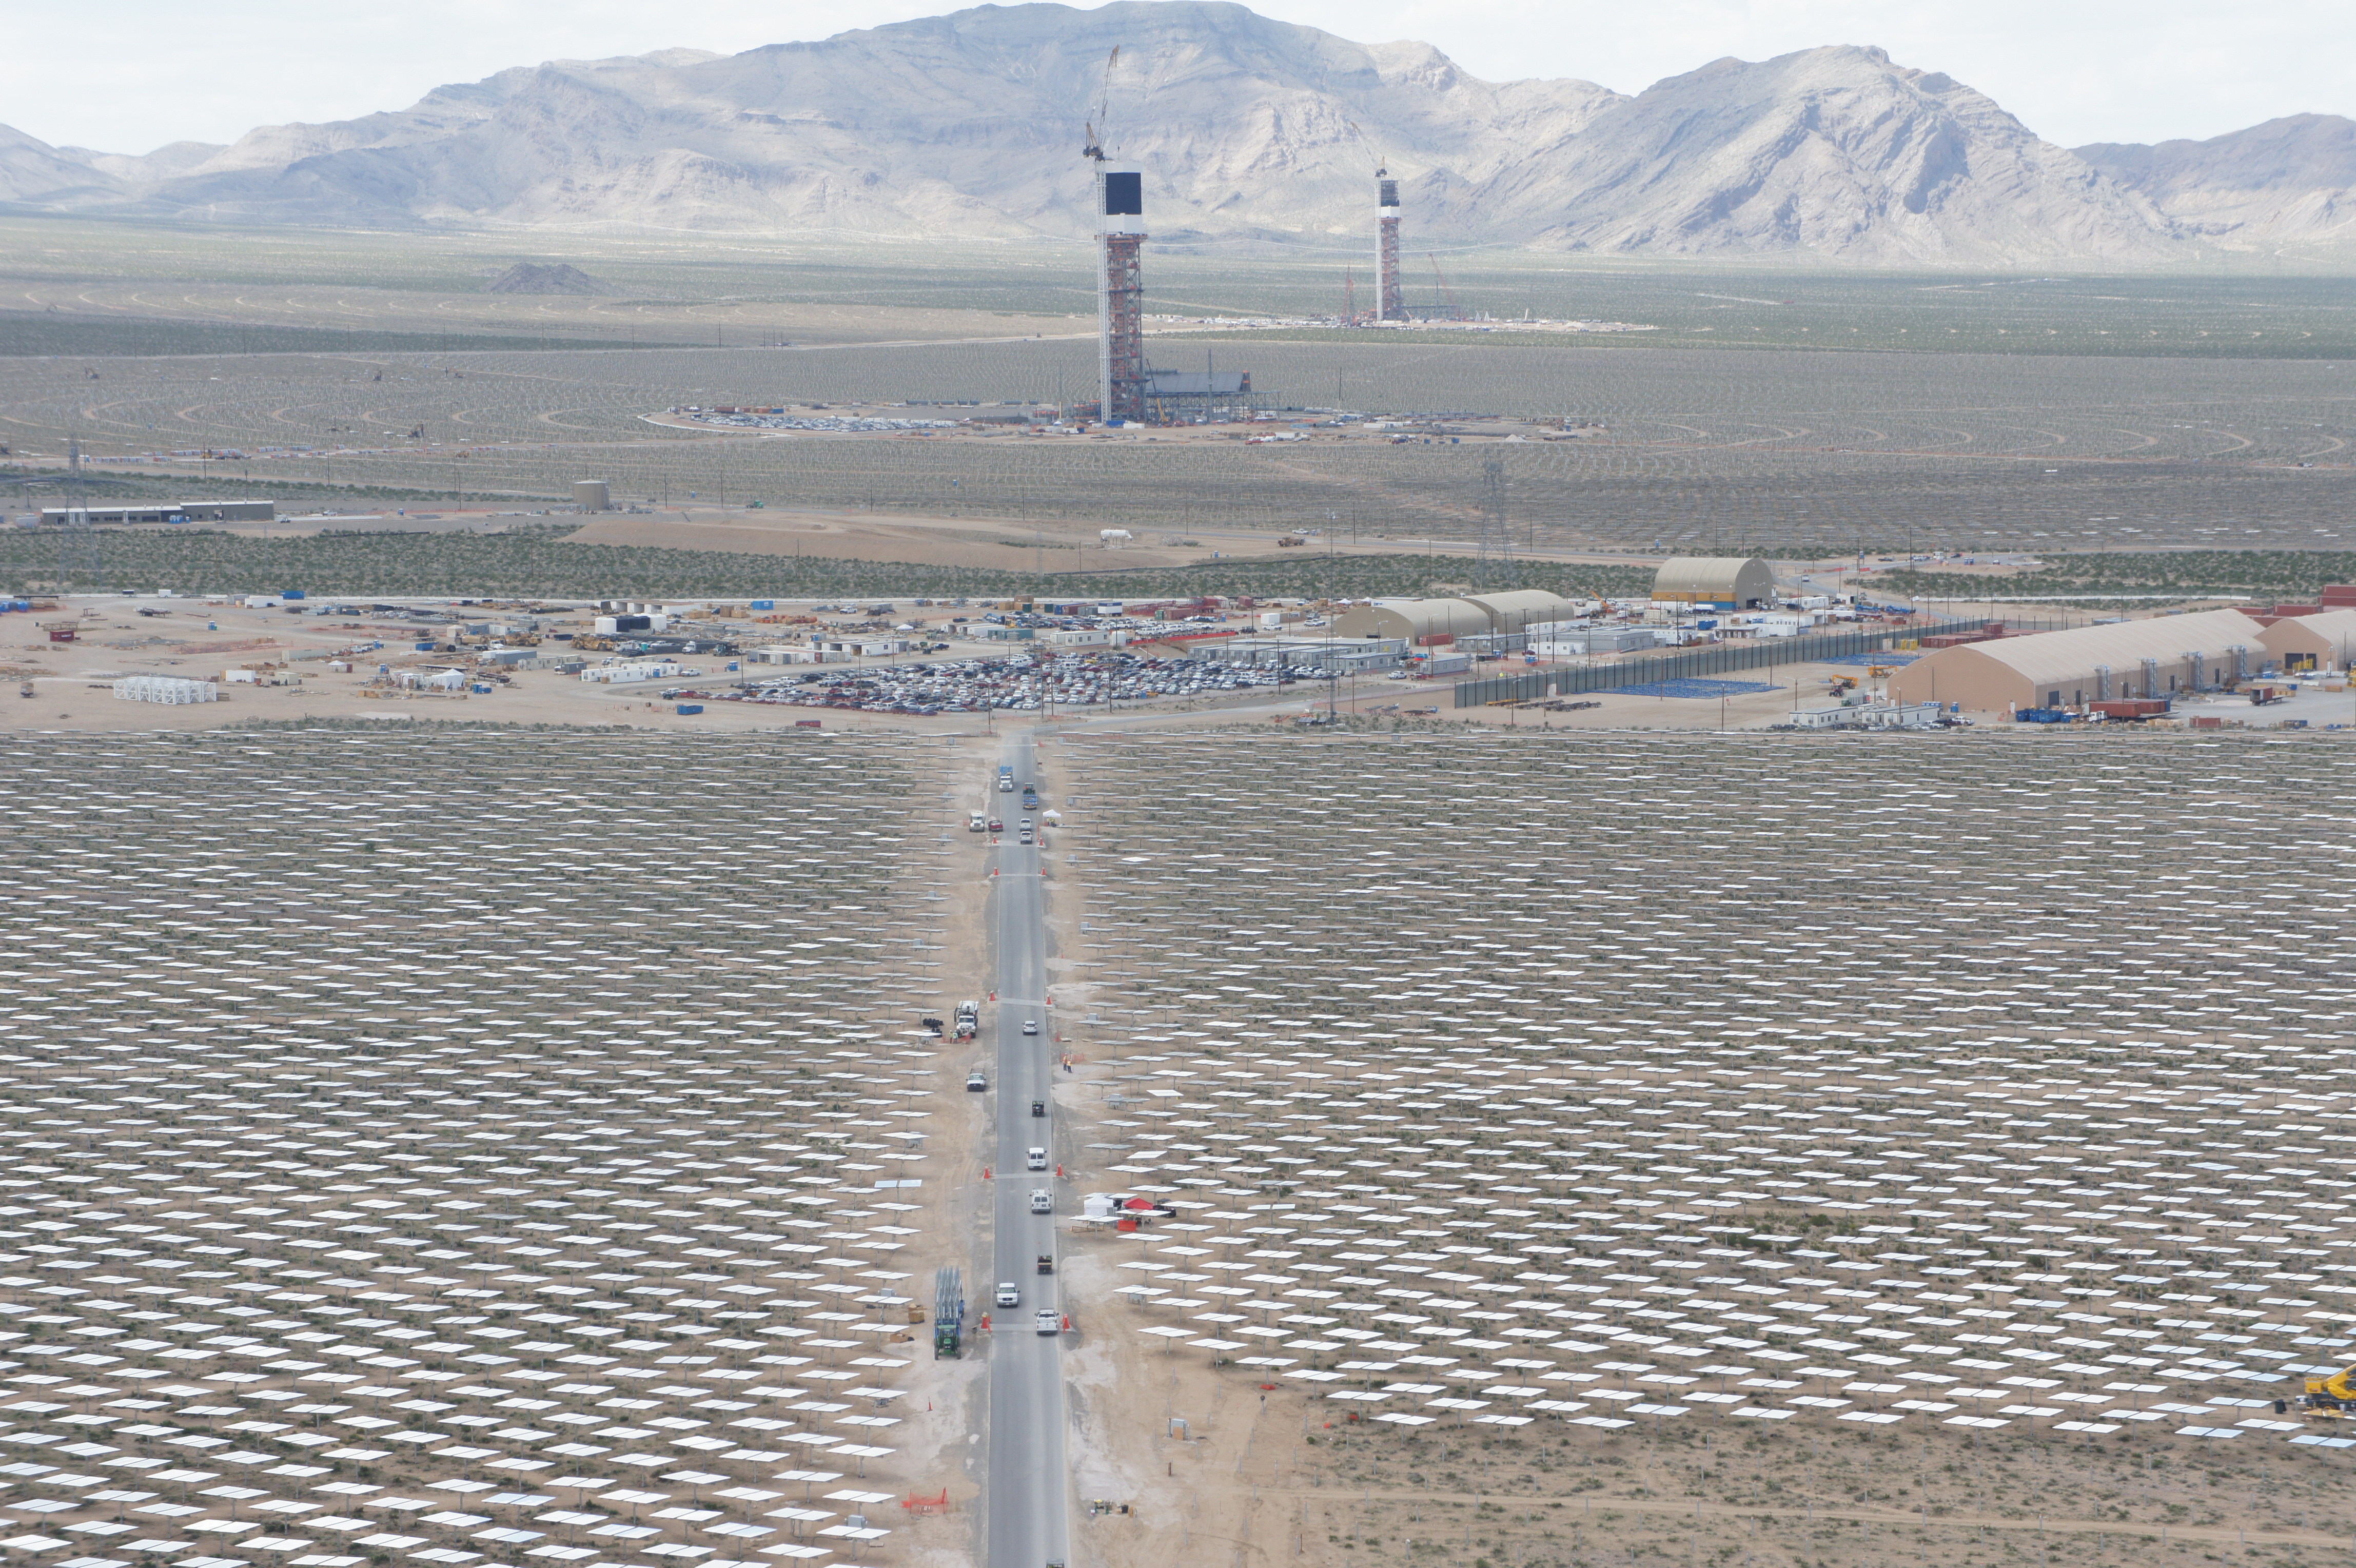 An aerial view of Ivanpah with towers 2 and 3 in the background